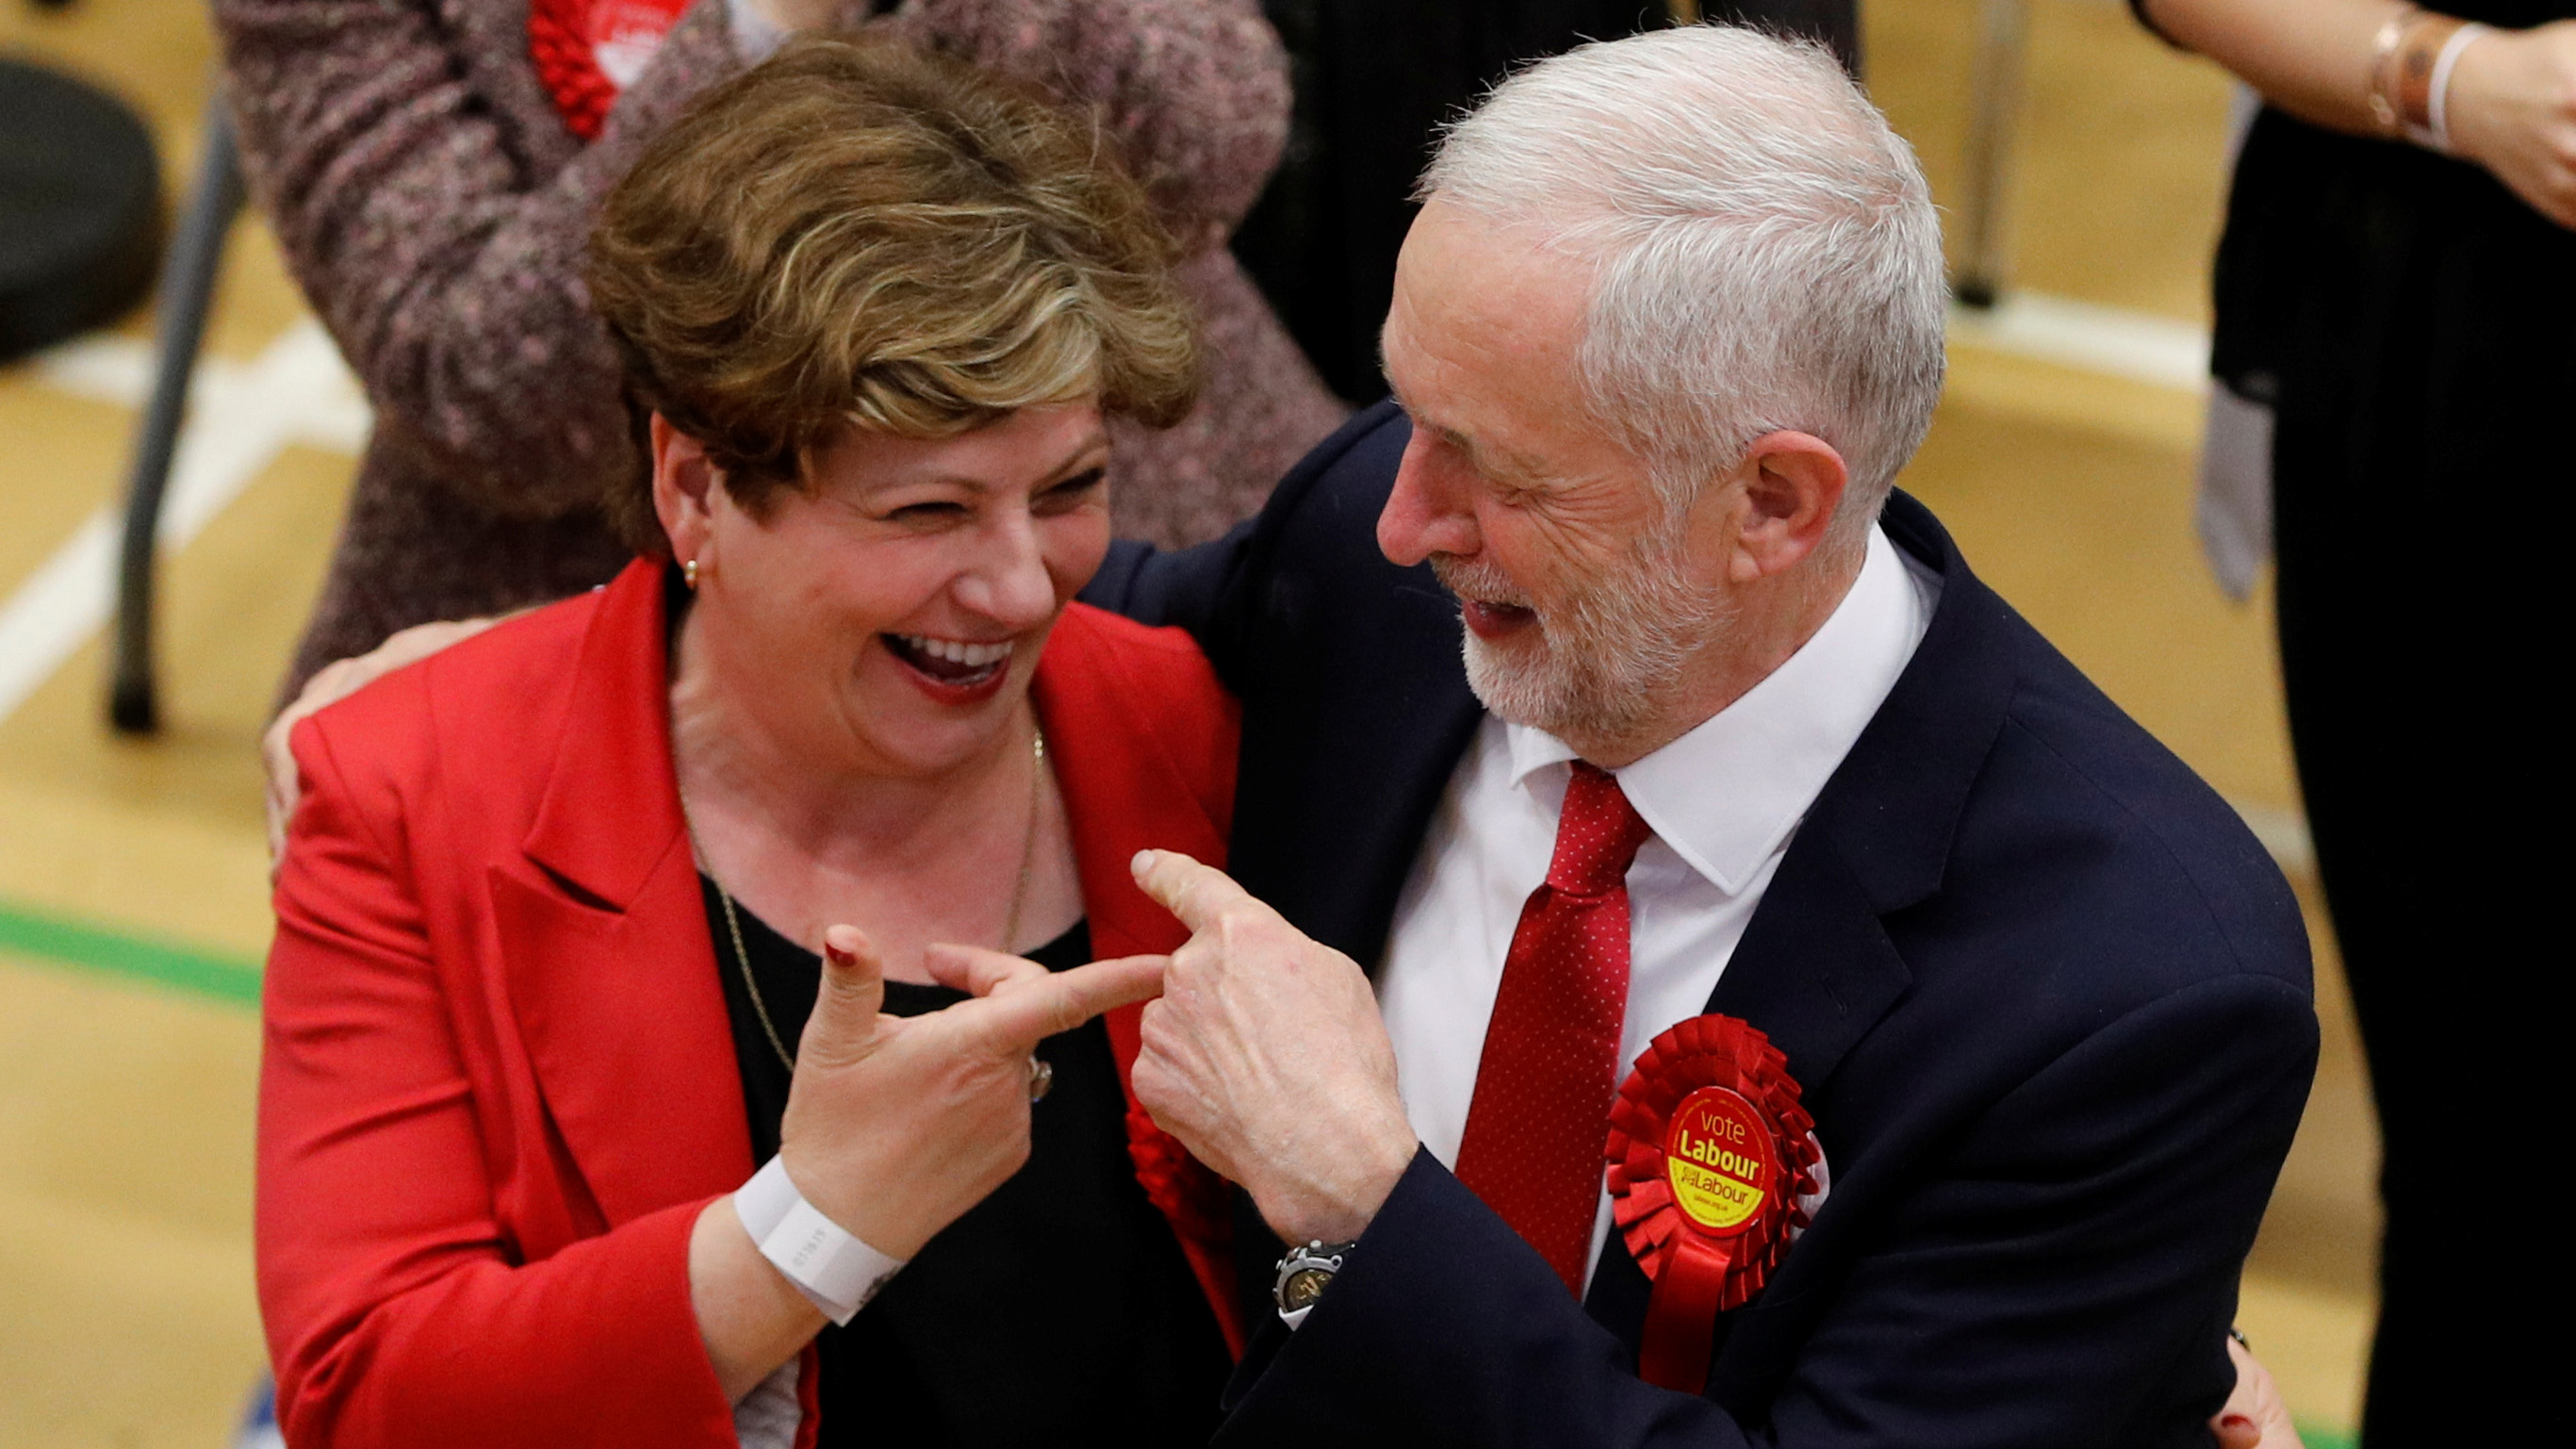 Jeremy Corbyn, leader of Britain's opposition Labour Party, and Labour Party candidate Emily Thornberry gesture at a counting centre for Britain's general election in London, June 9, 2017. REUTERS/Darren Staples - RTX39QOZ